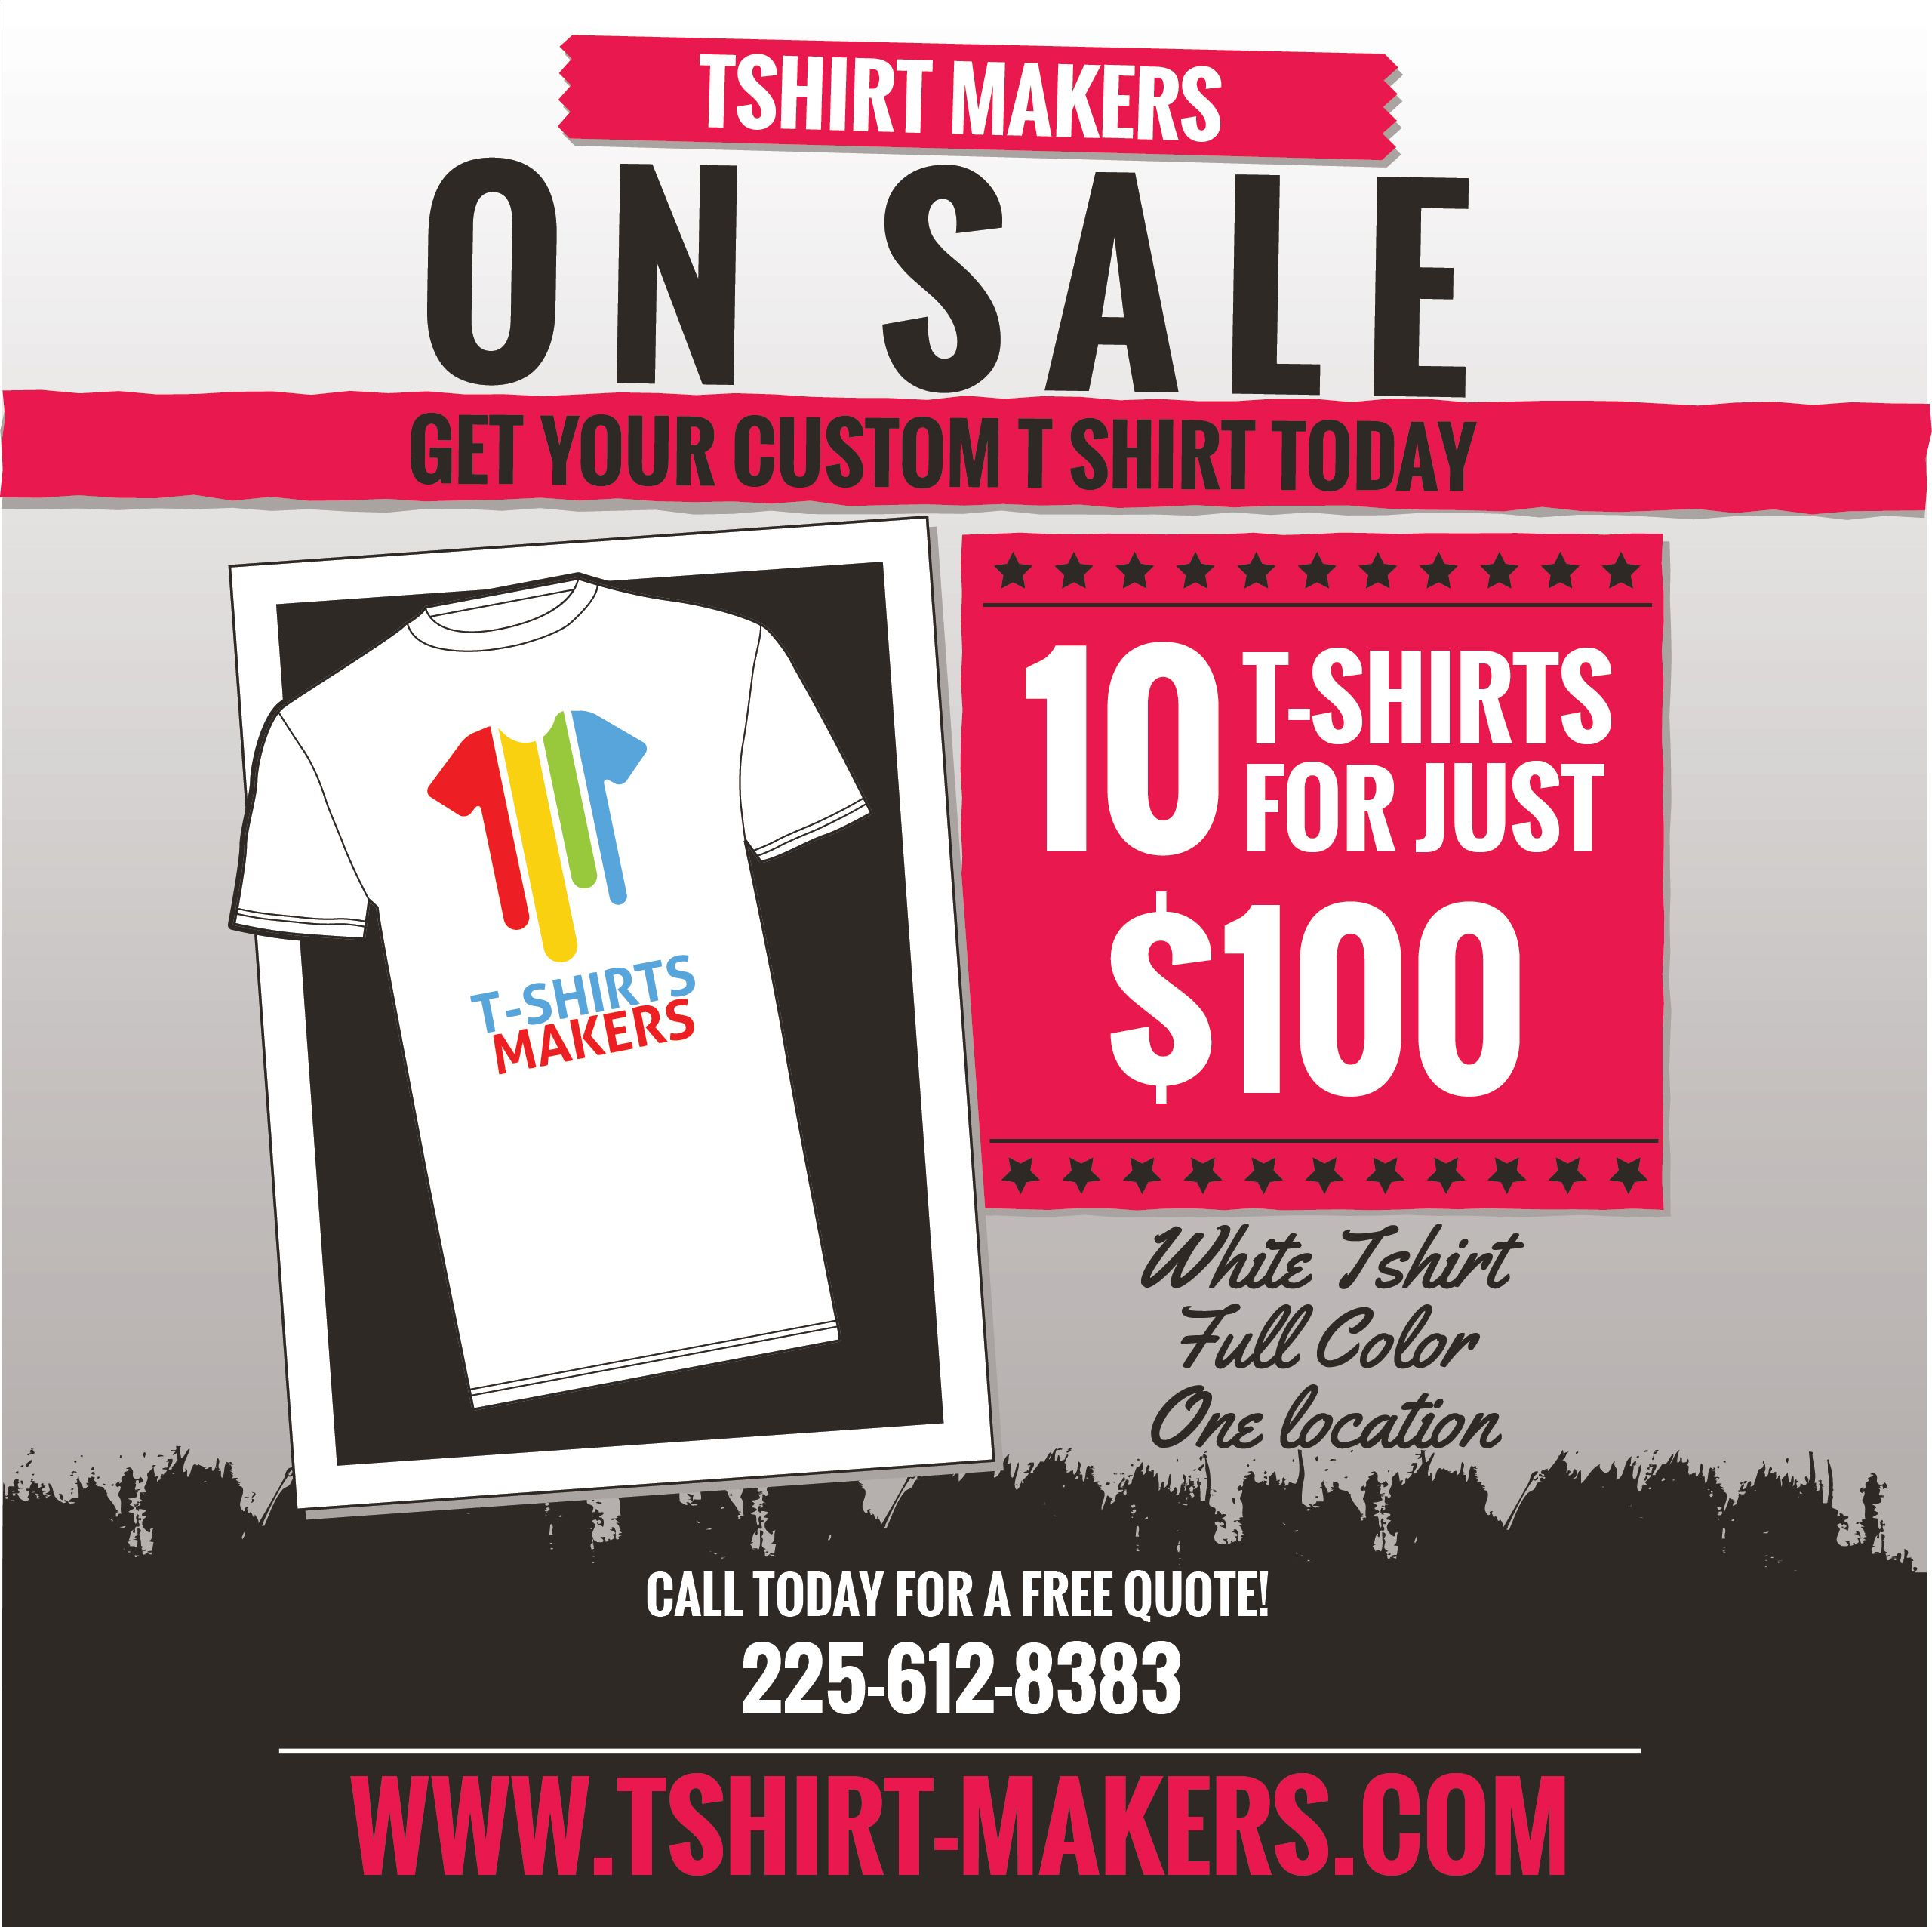 On sale 10 T-shirts for a $100, get your custom t-shirt today